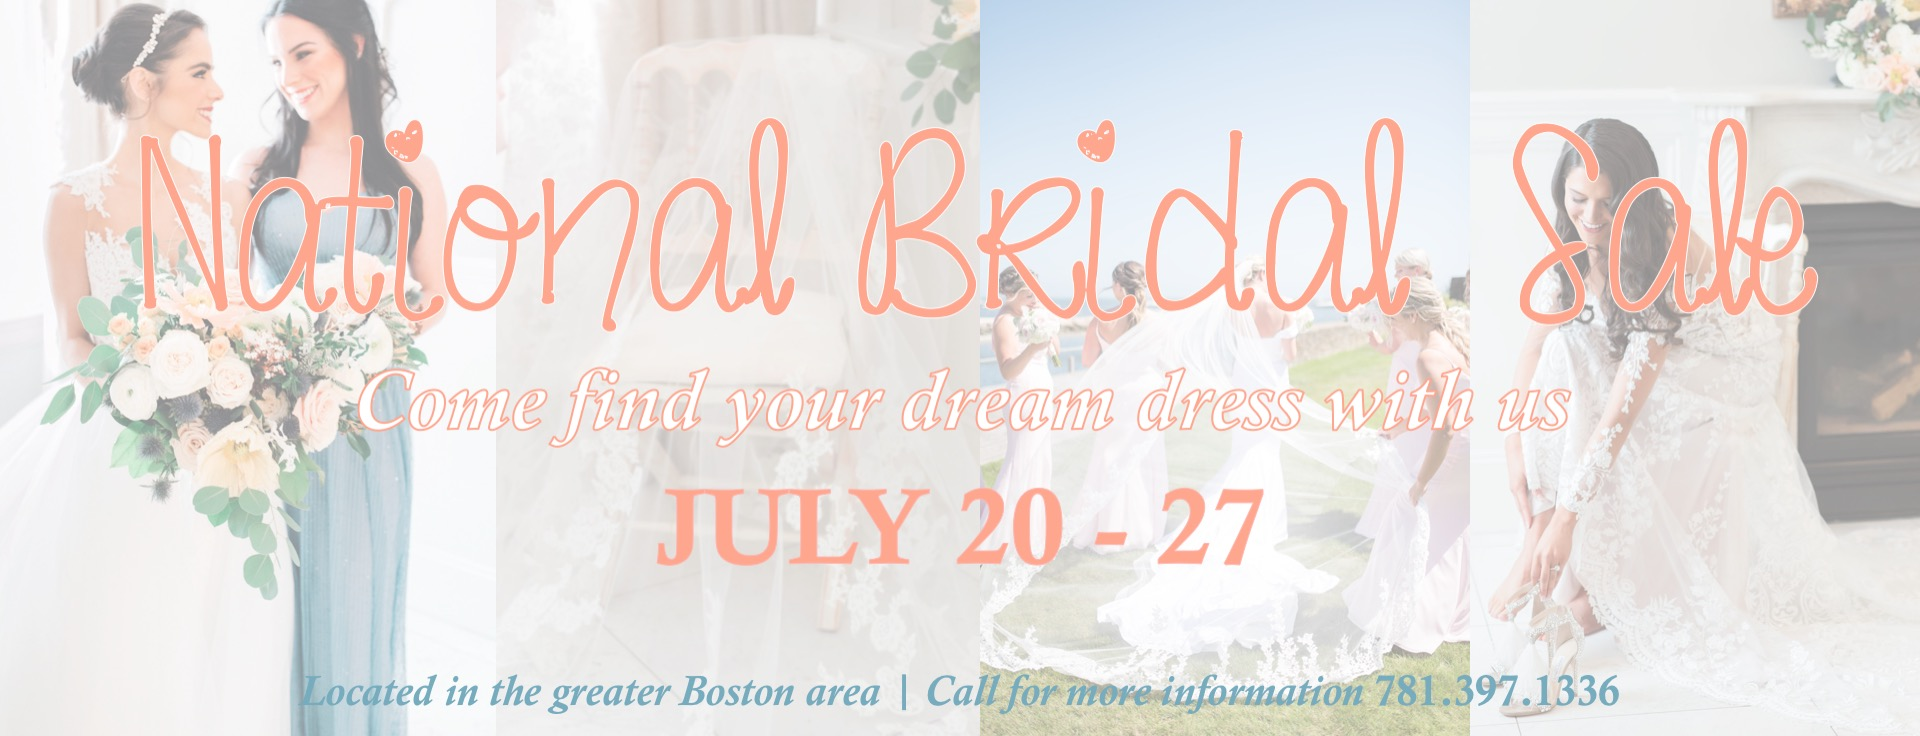 Bridal Shop For Wedding Dresses Bridesmaids Mother Of The Bride More